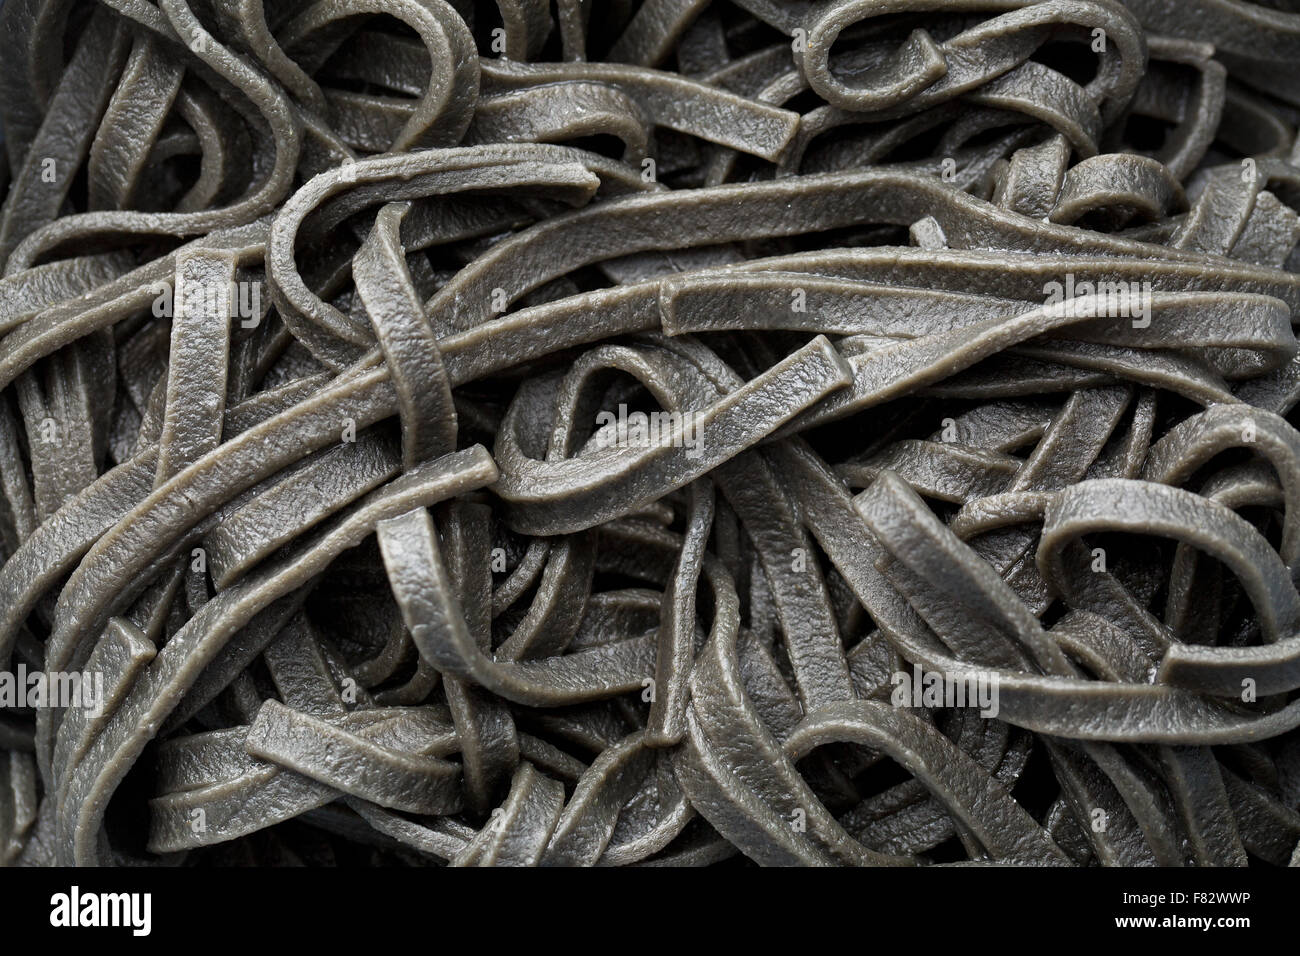 cooked black noodles with squid sepia ink - Stock Image